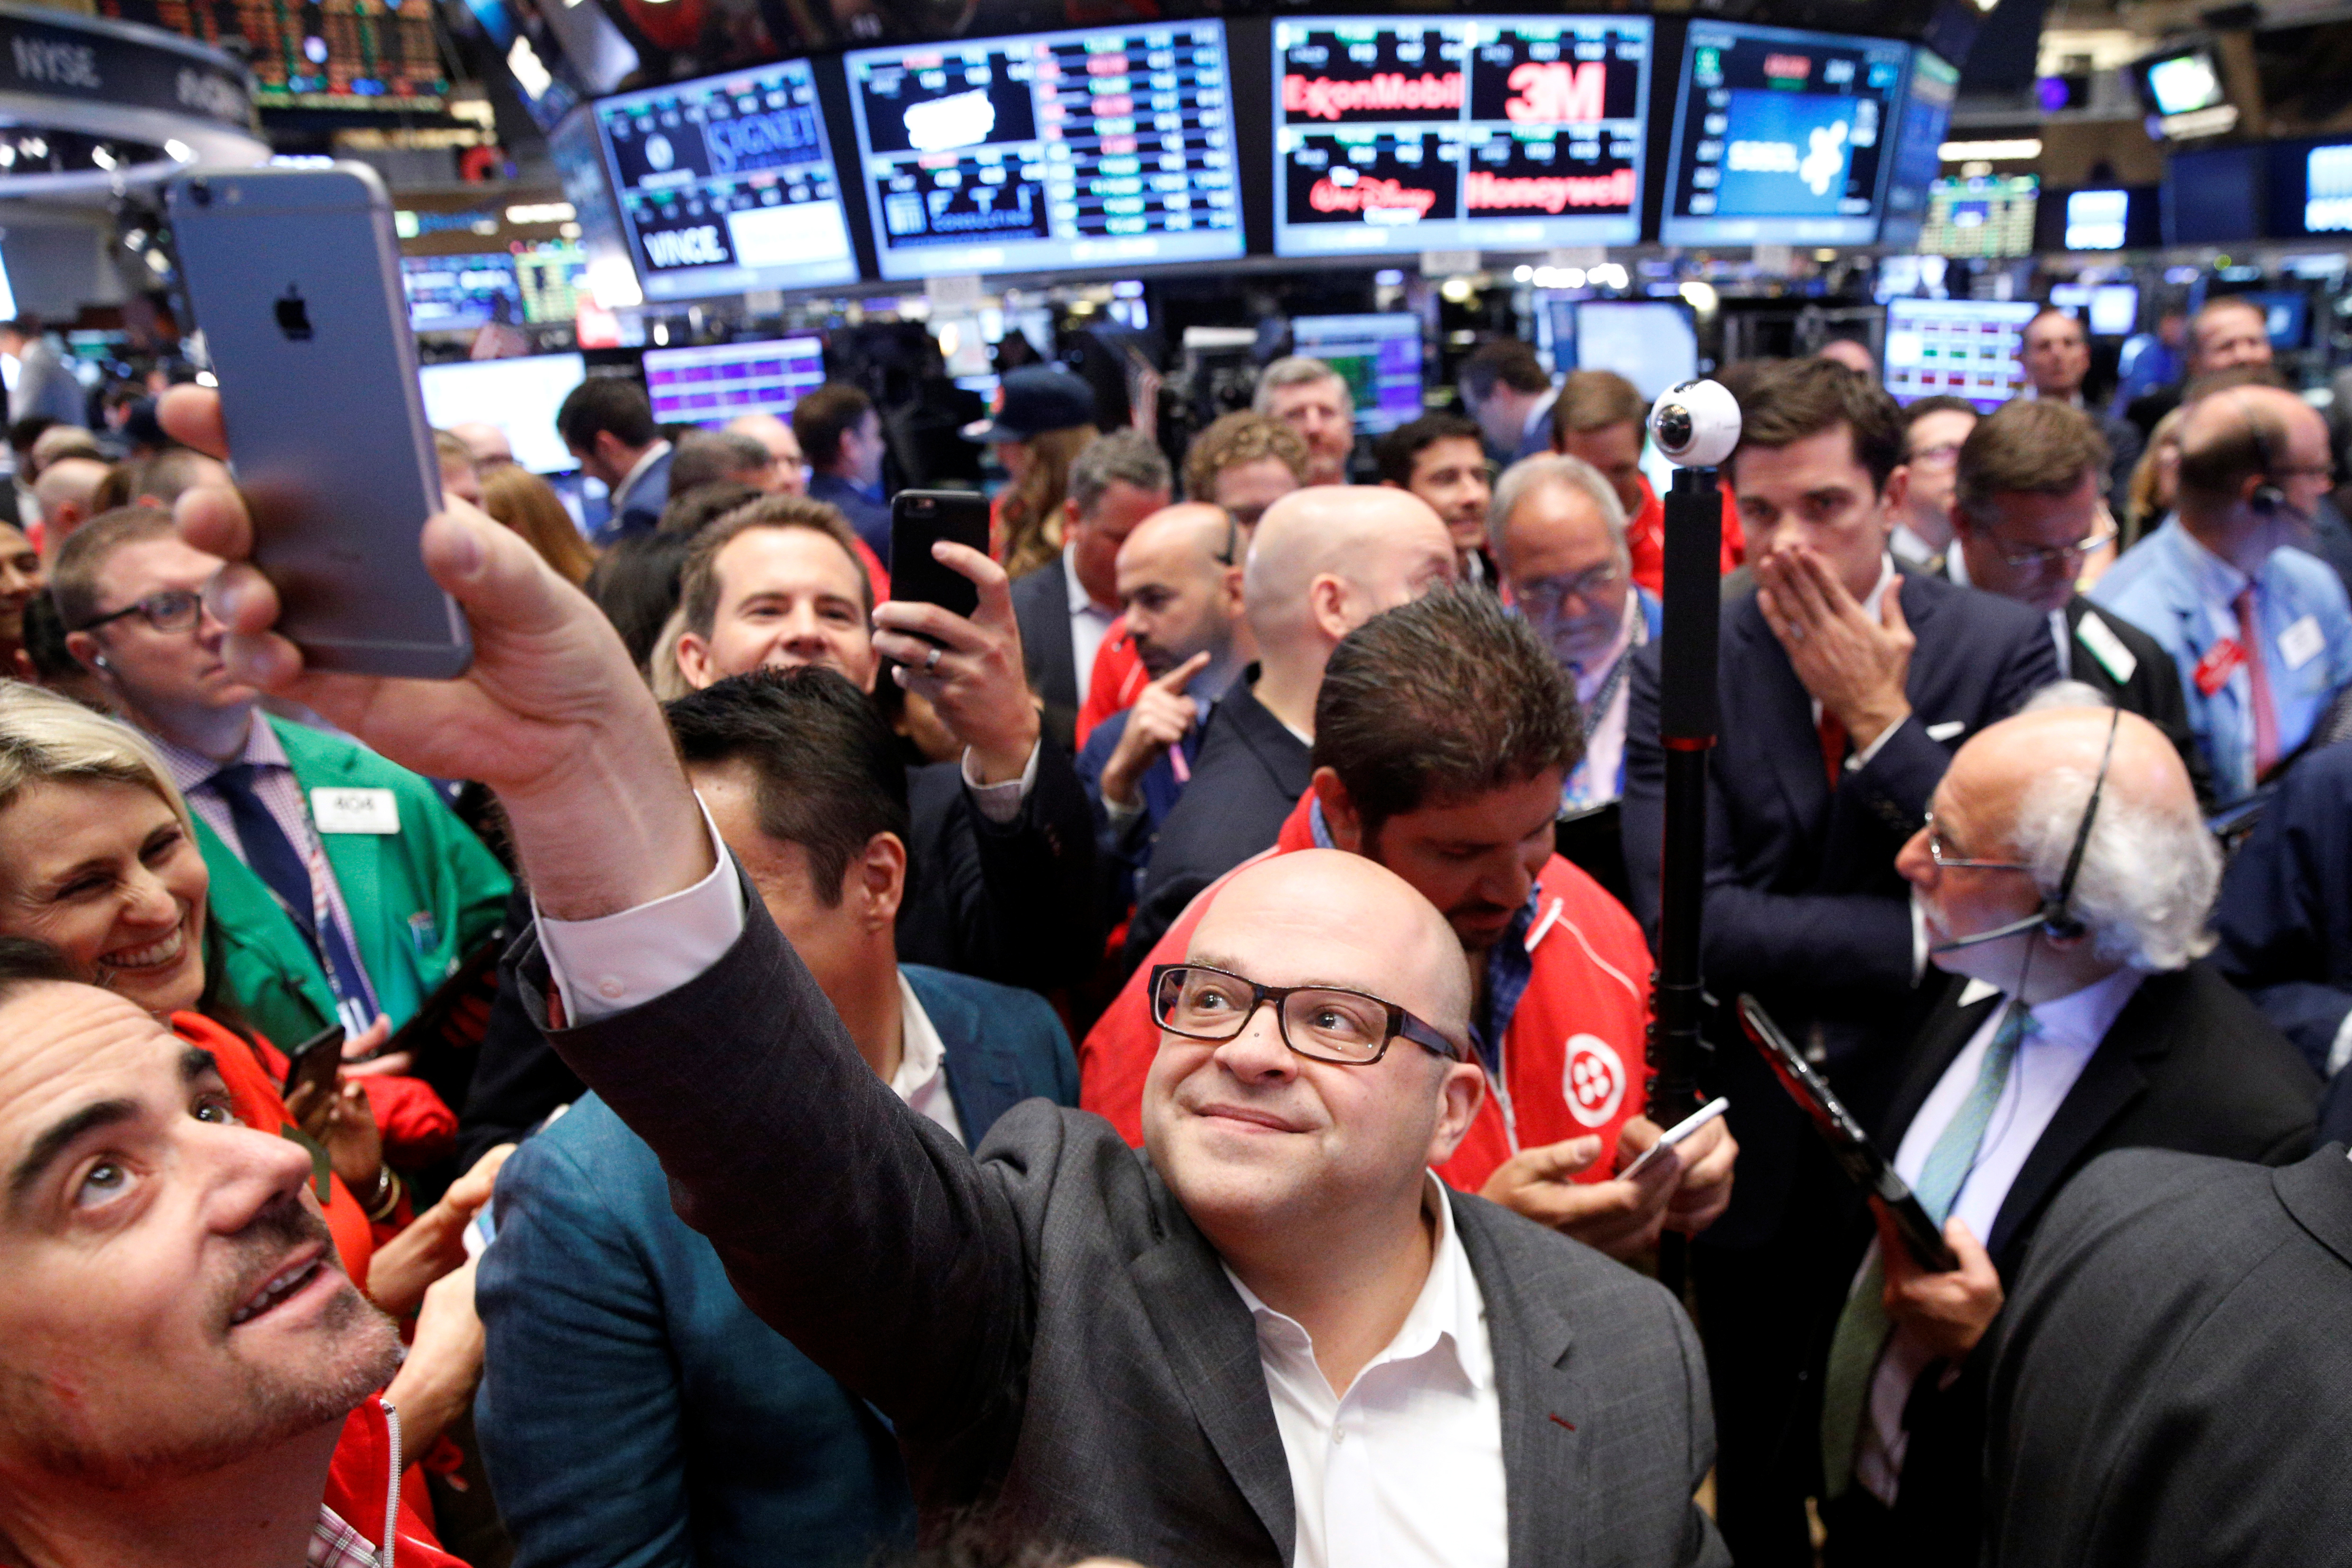 Jeff Lawson, Founder, CEO, & Chairman of Twilio takes a selfie photo during his company's IPO on the floor of the NYSE